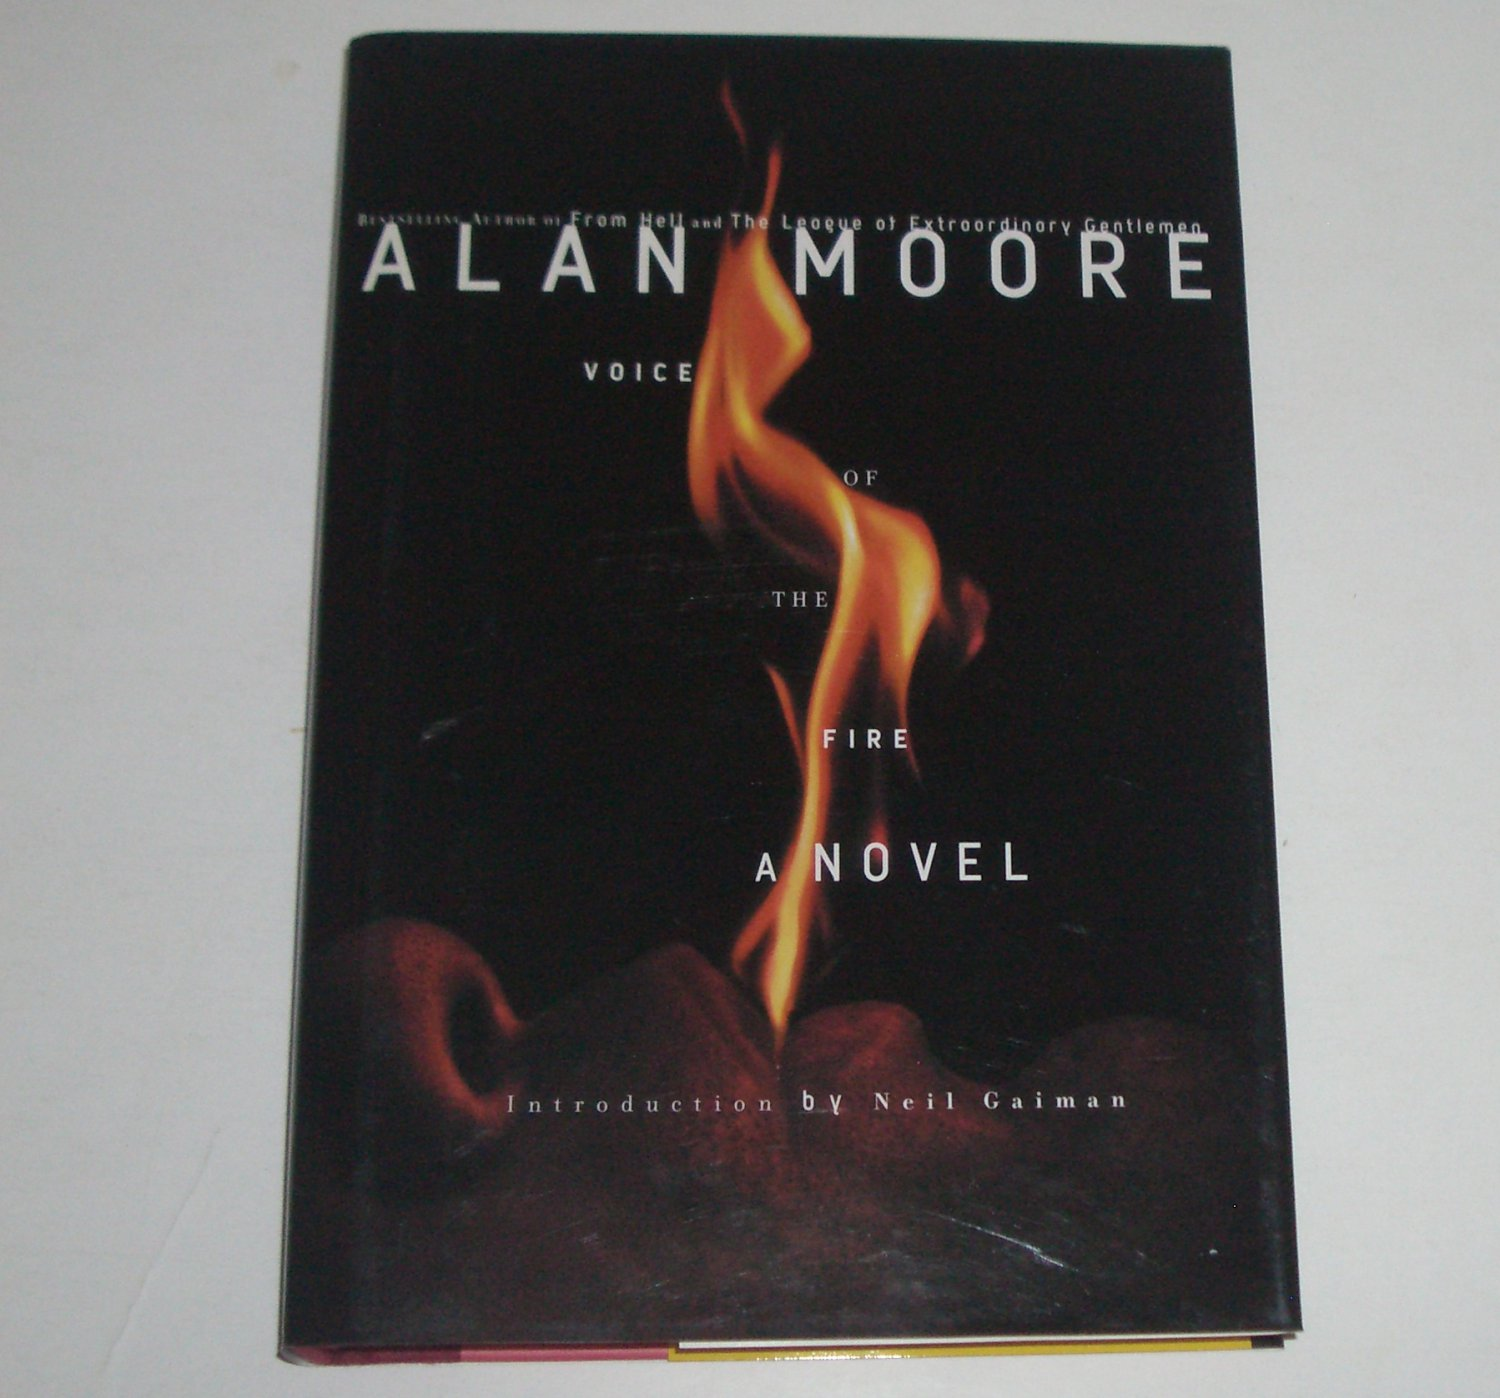 Voice of the Fire by Jose Villarrubia 2003 Hardcover with Dust Jacket